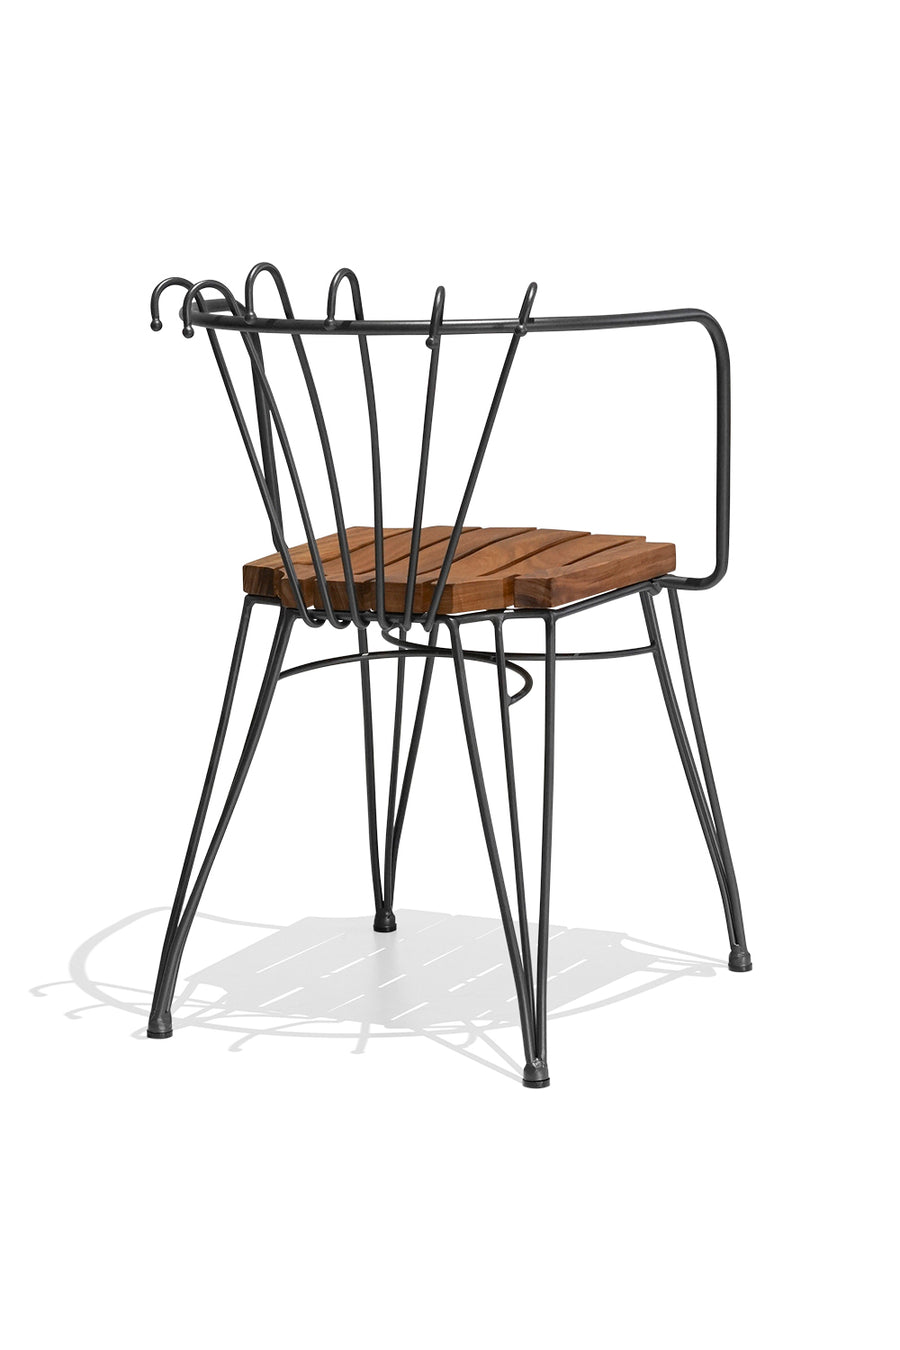 COLLAROY dining chair